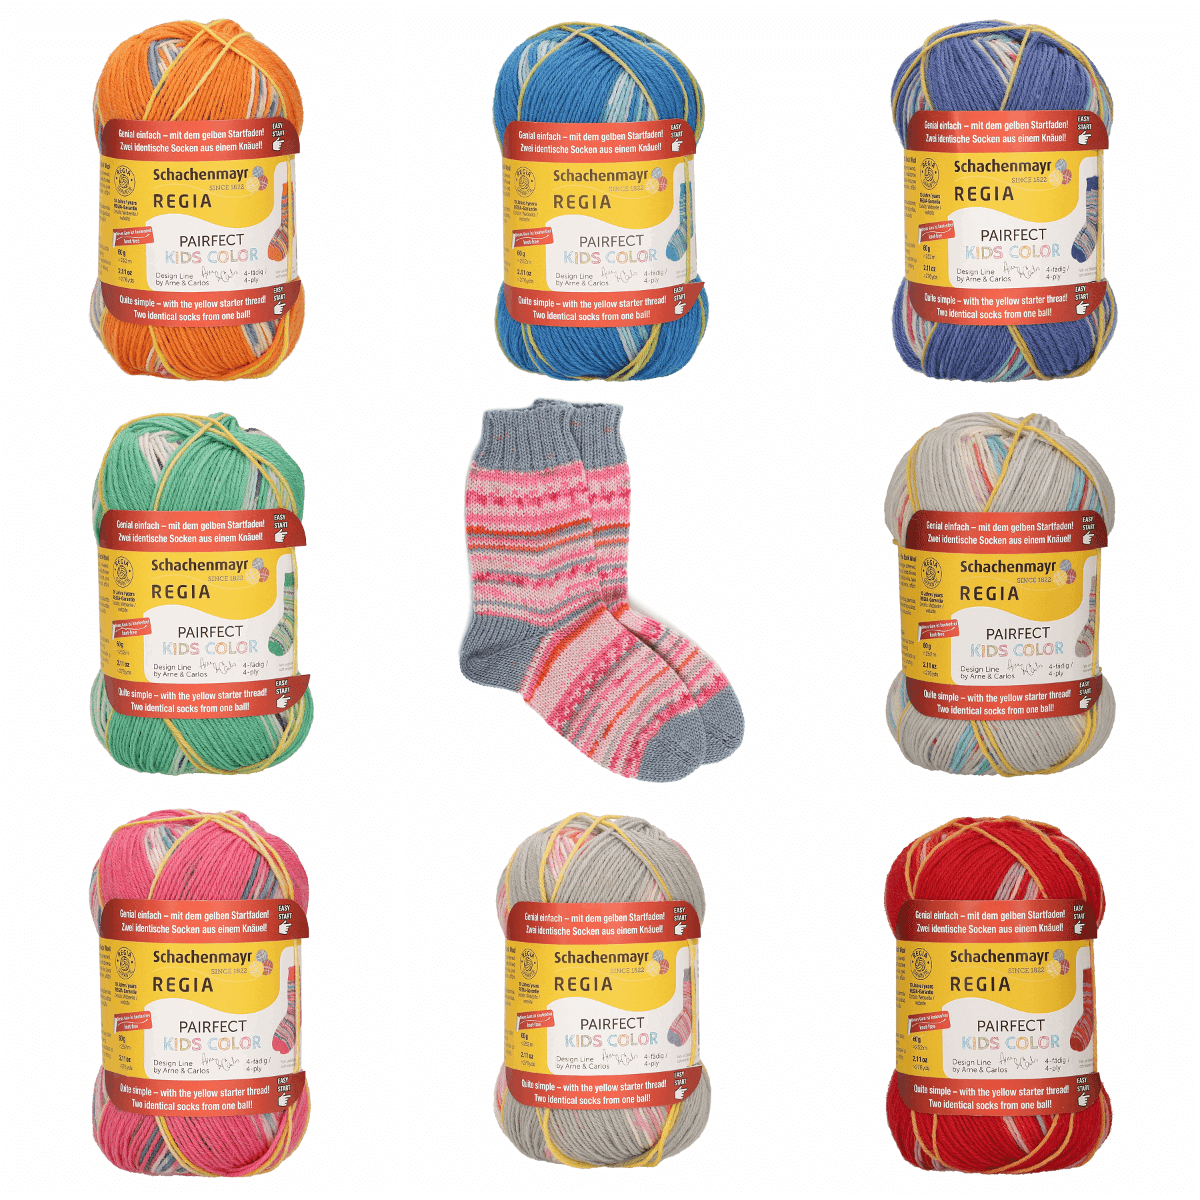 Regia Arne & Carlos Kids Pairfect Socks 4 PLY  Knitting Yarn Craft 60g Ball 2983 Hilde